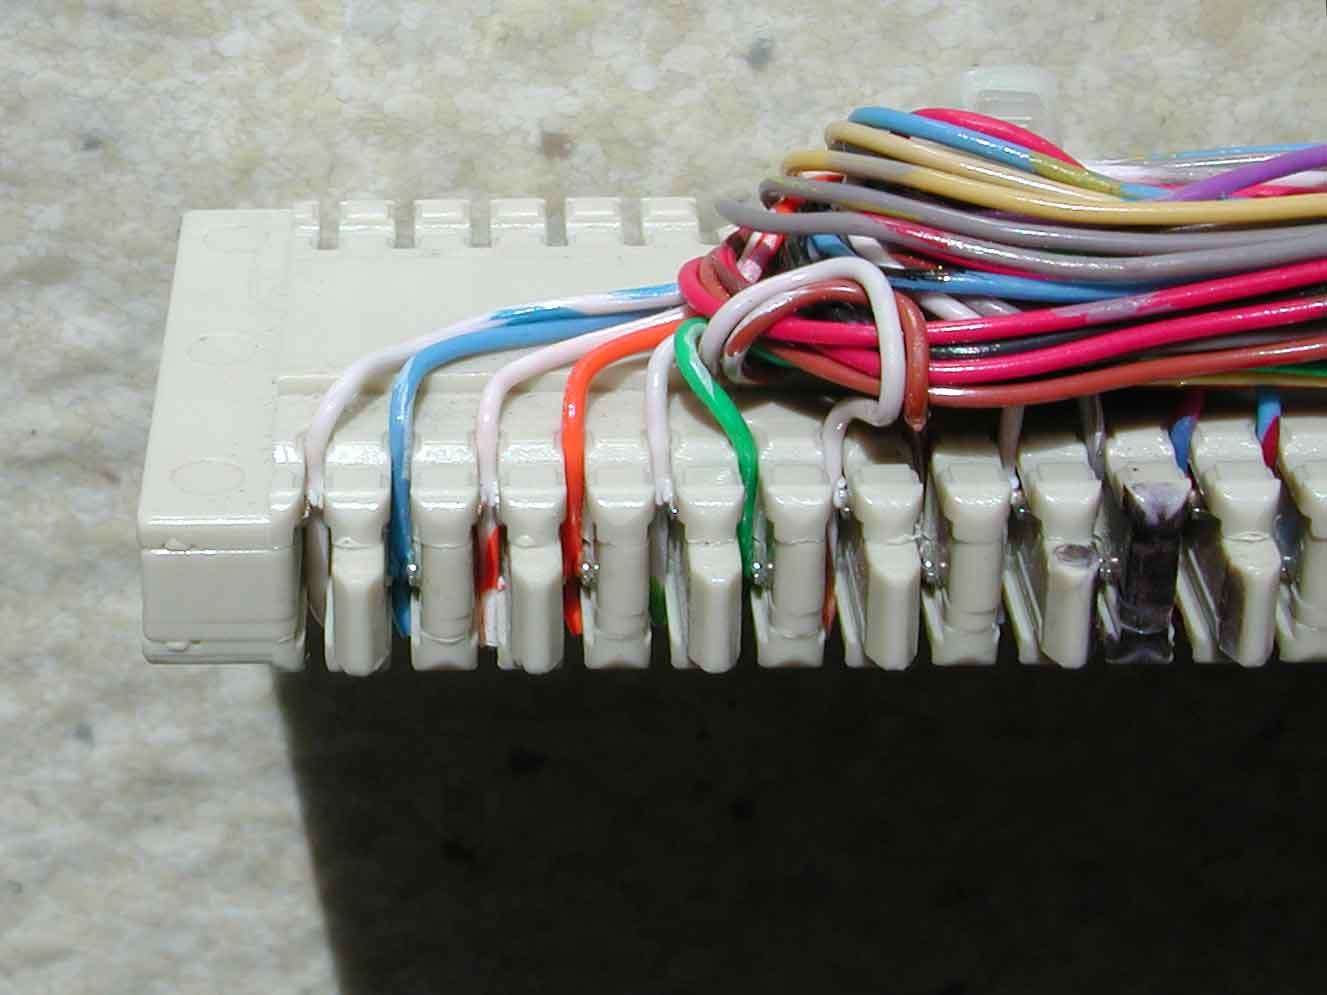 Bix Block Wiring Diagram Auto Electrical 24 Images